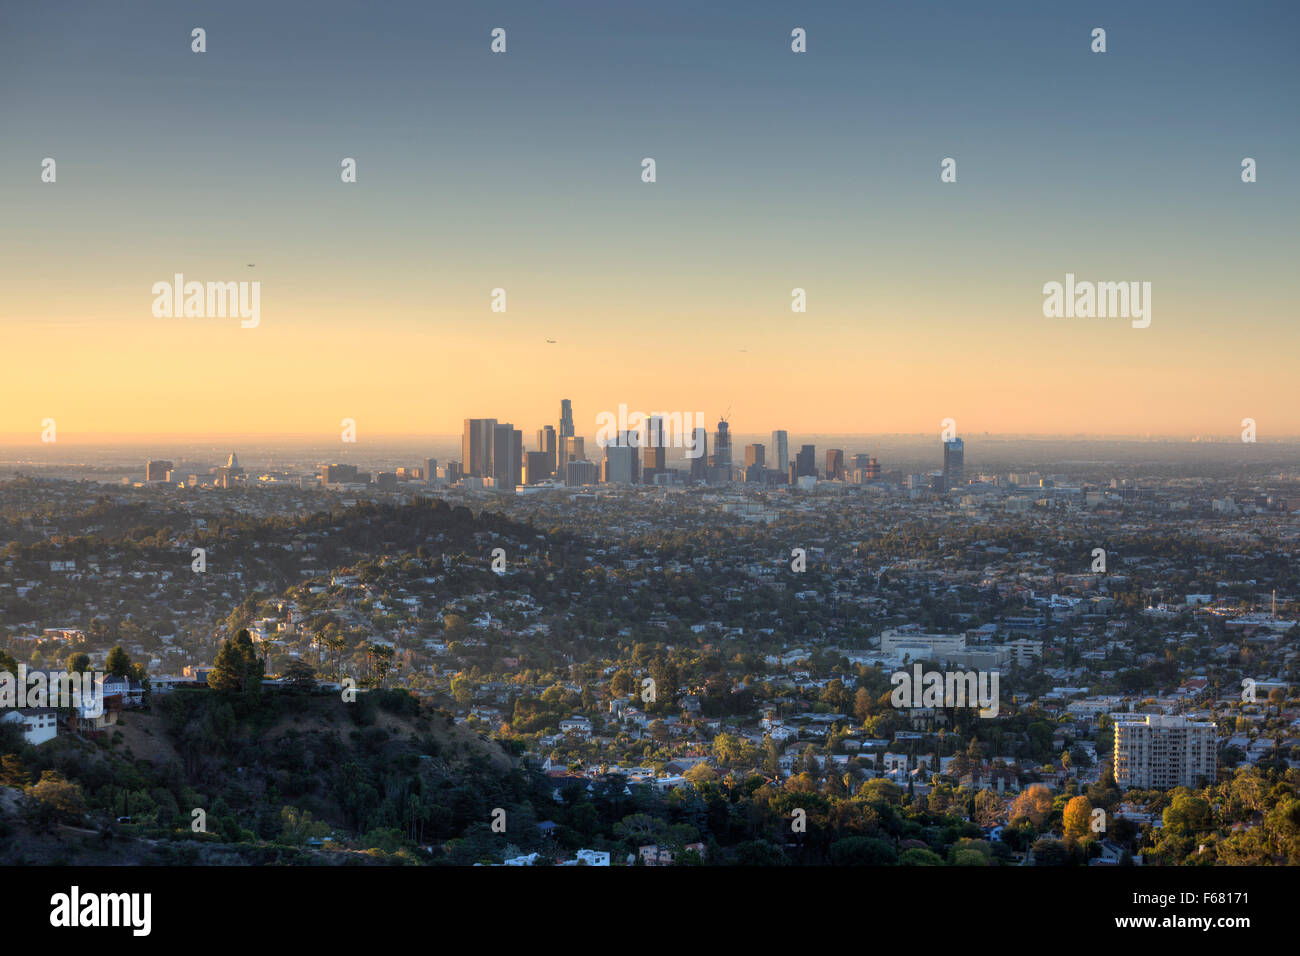 The City of Los Angeles at dawn. - Stock Image